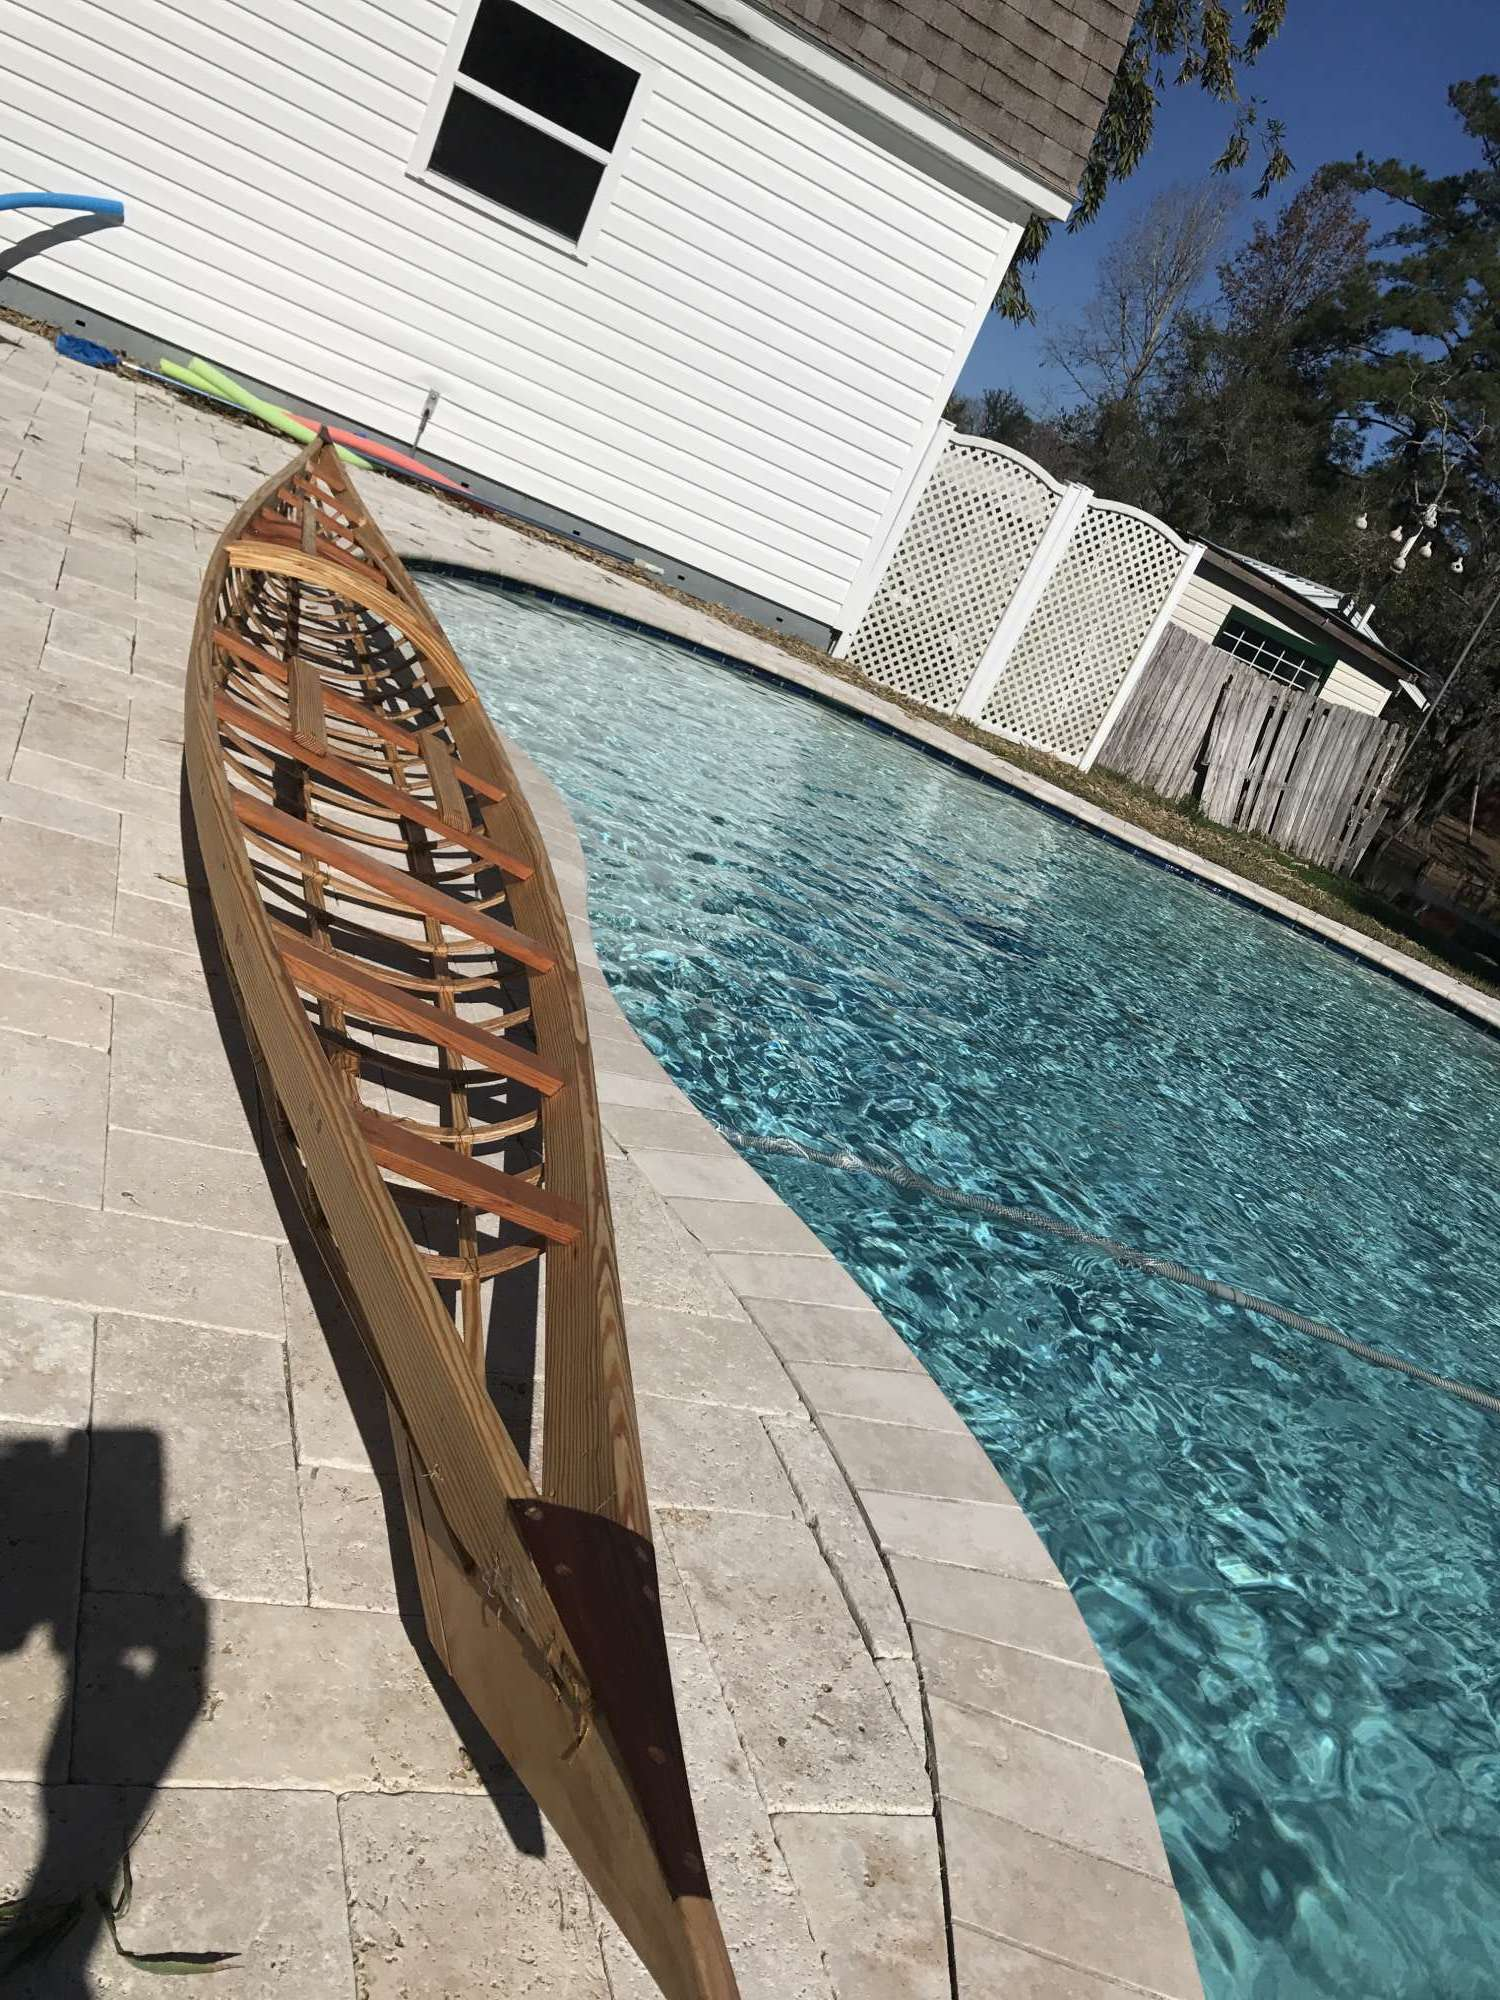 Not quite ready to be put in the water, but it is coated in tung oil (it absorbs into the wood) and the kayak is ready to be covered with fabric!